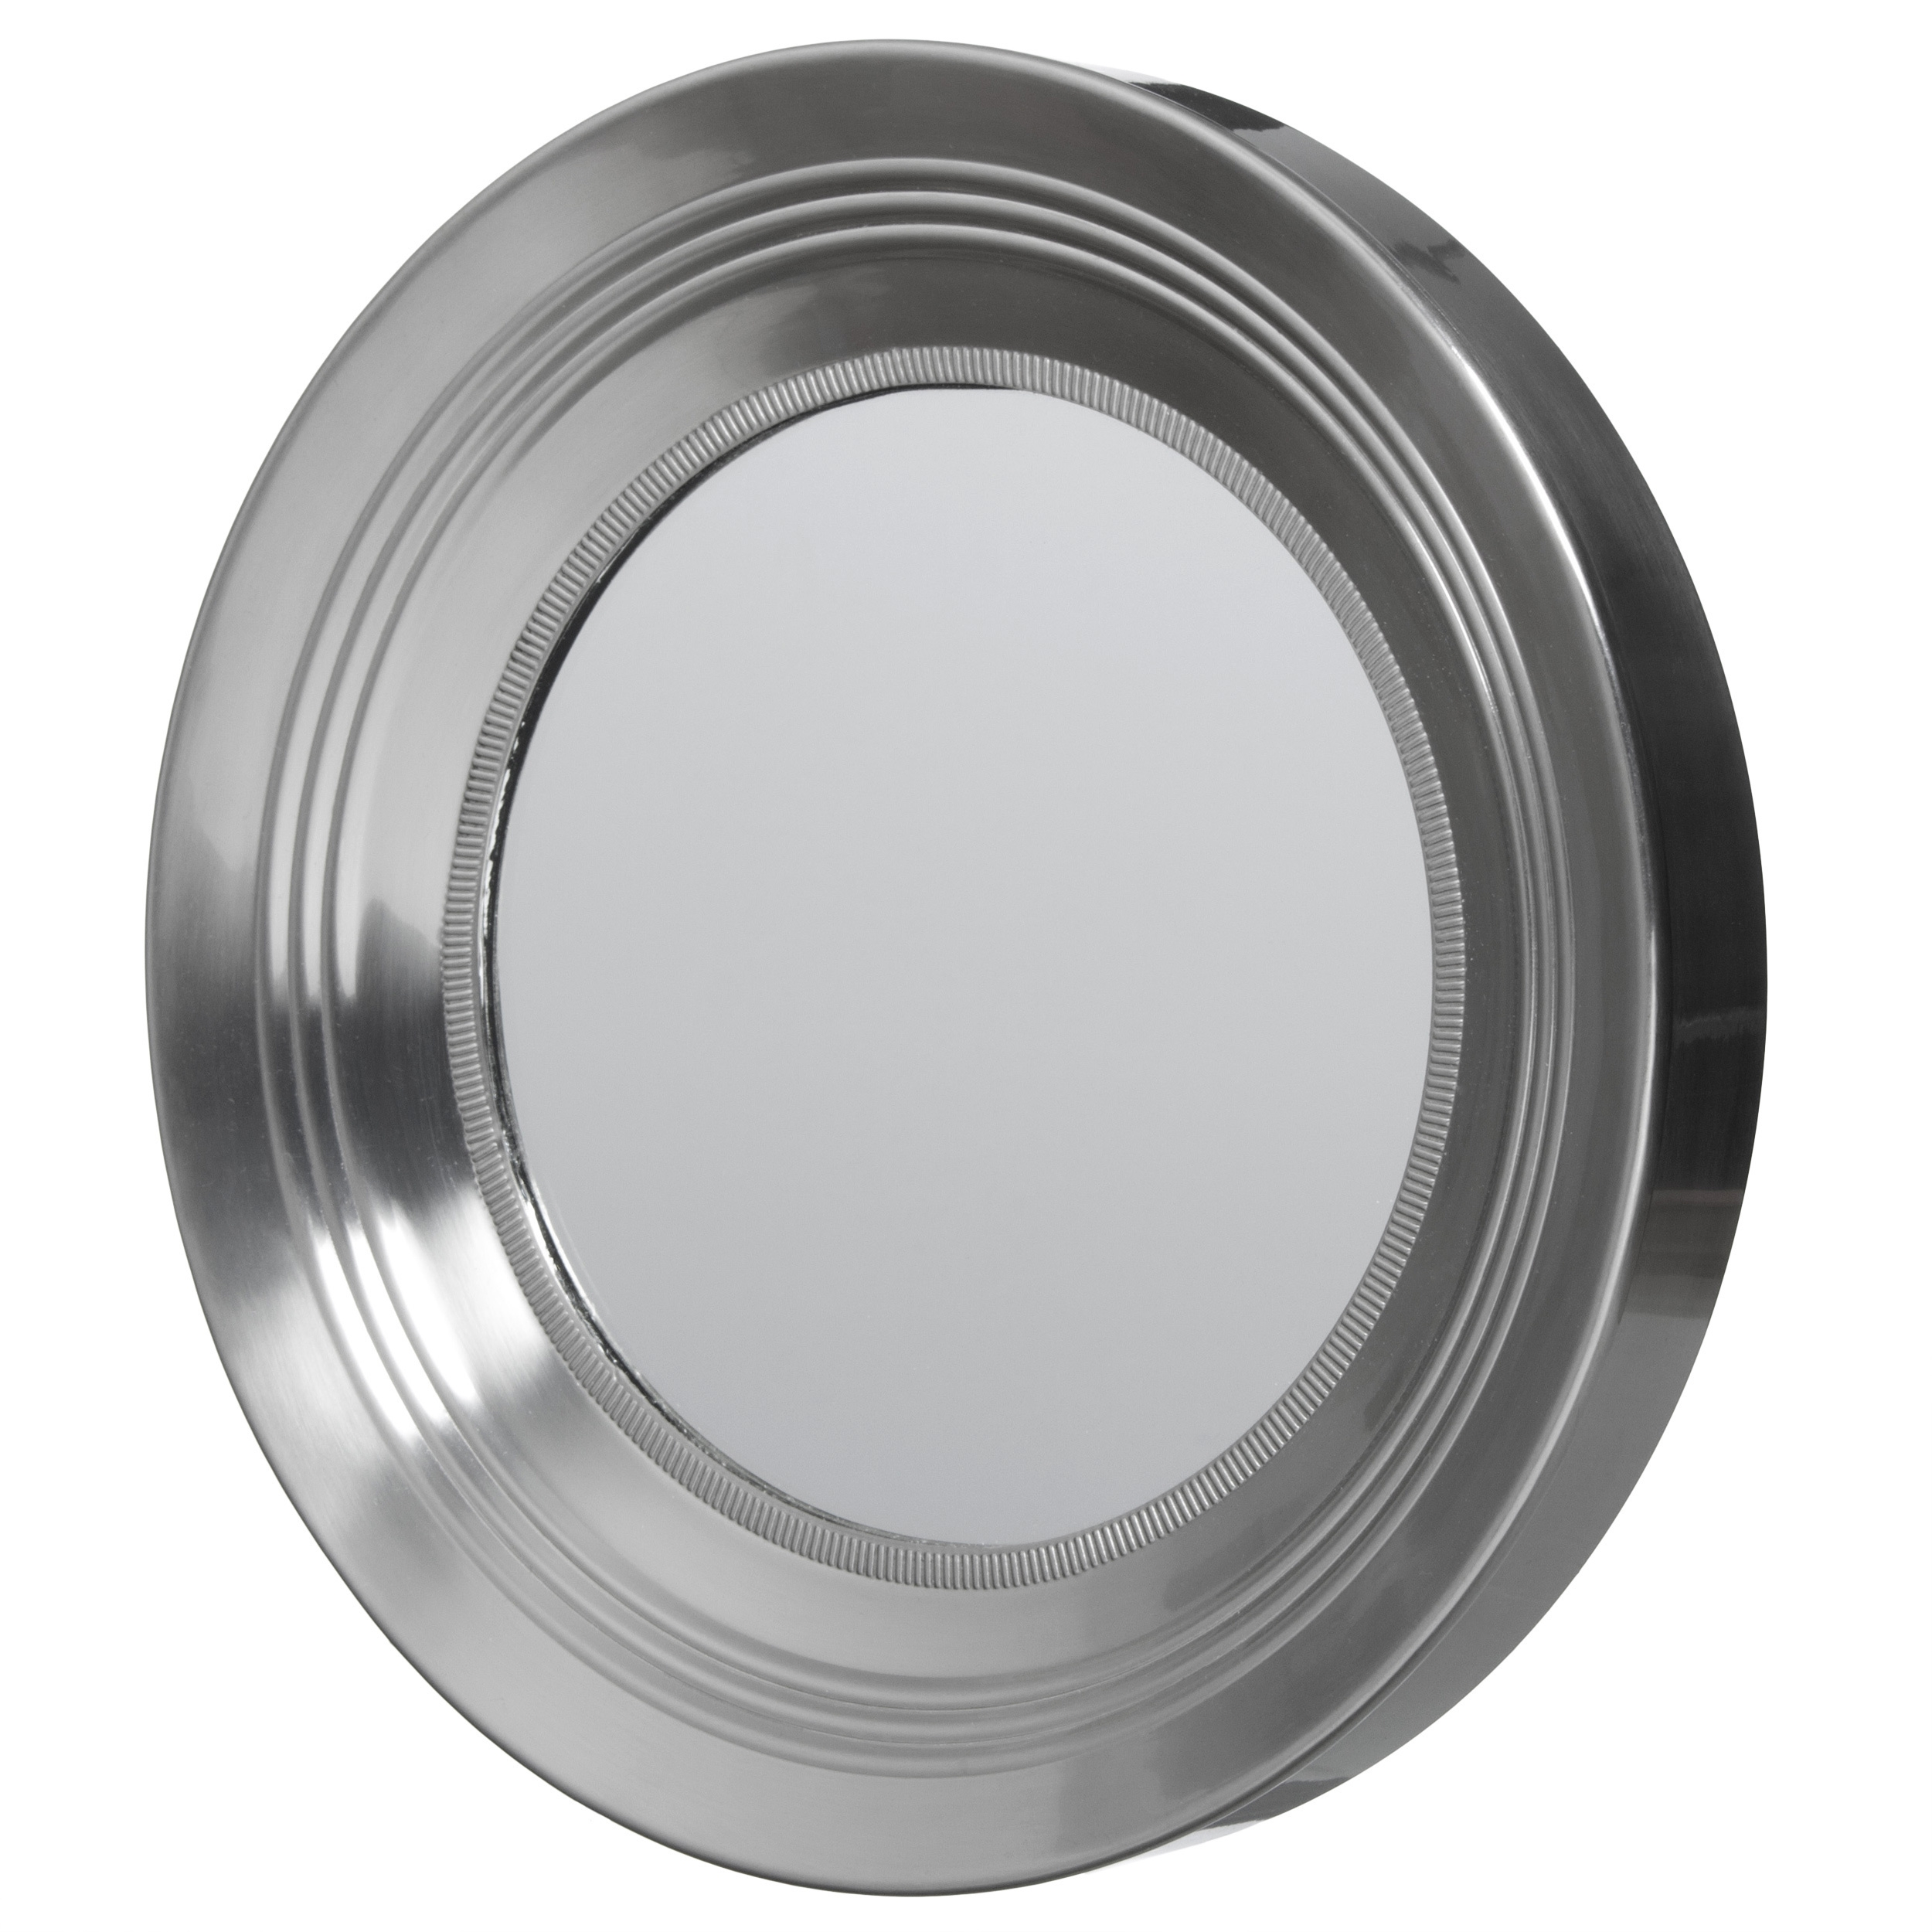 Furniture Various Sizes For Chrome Porthole Mirror At Overstock For Chrome Porthole Mirror (Image 6 of 15)